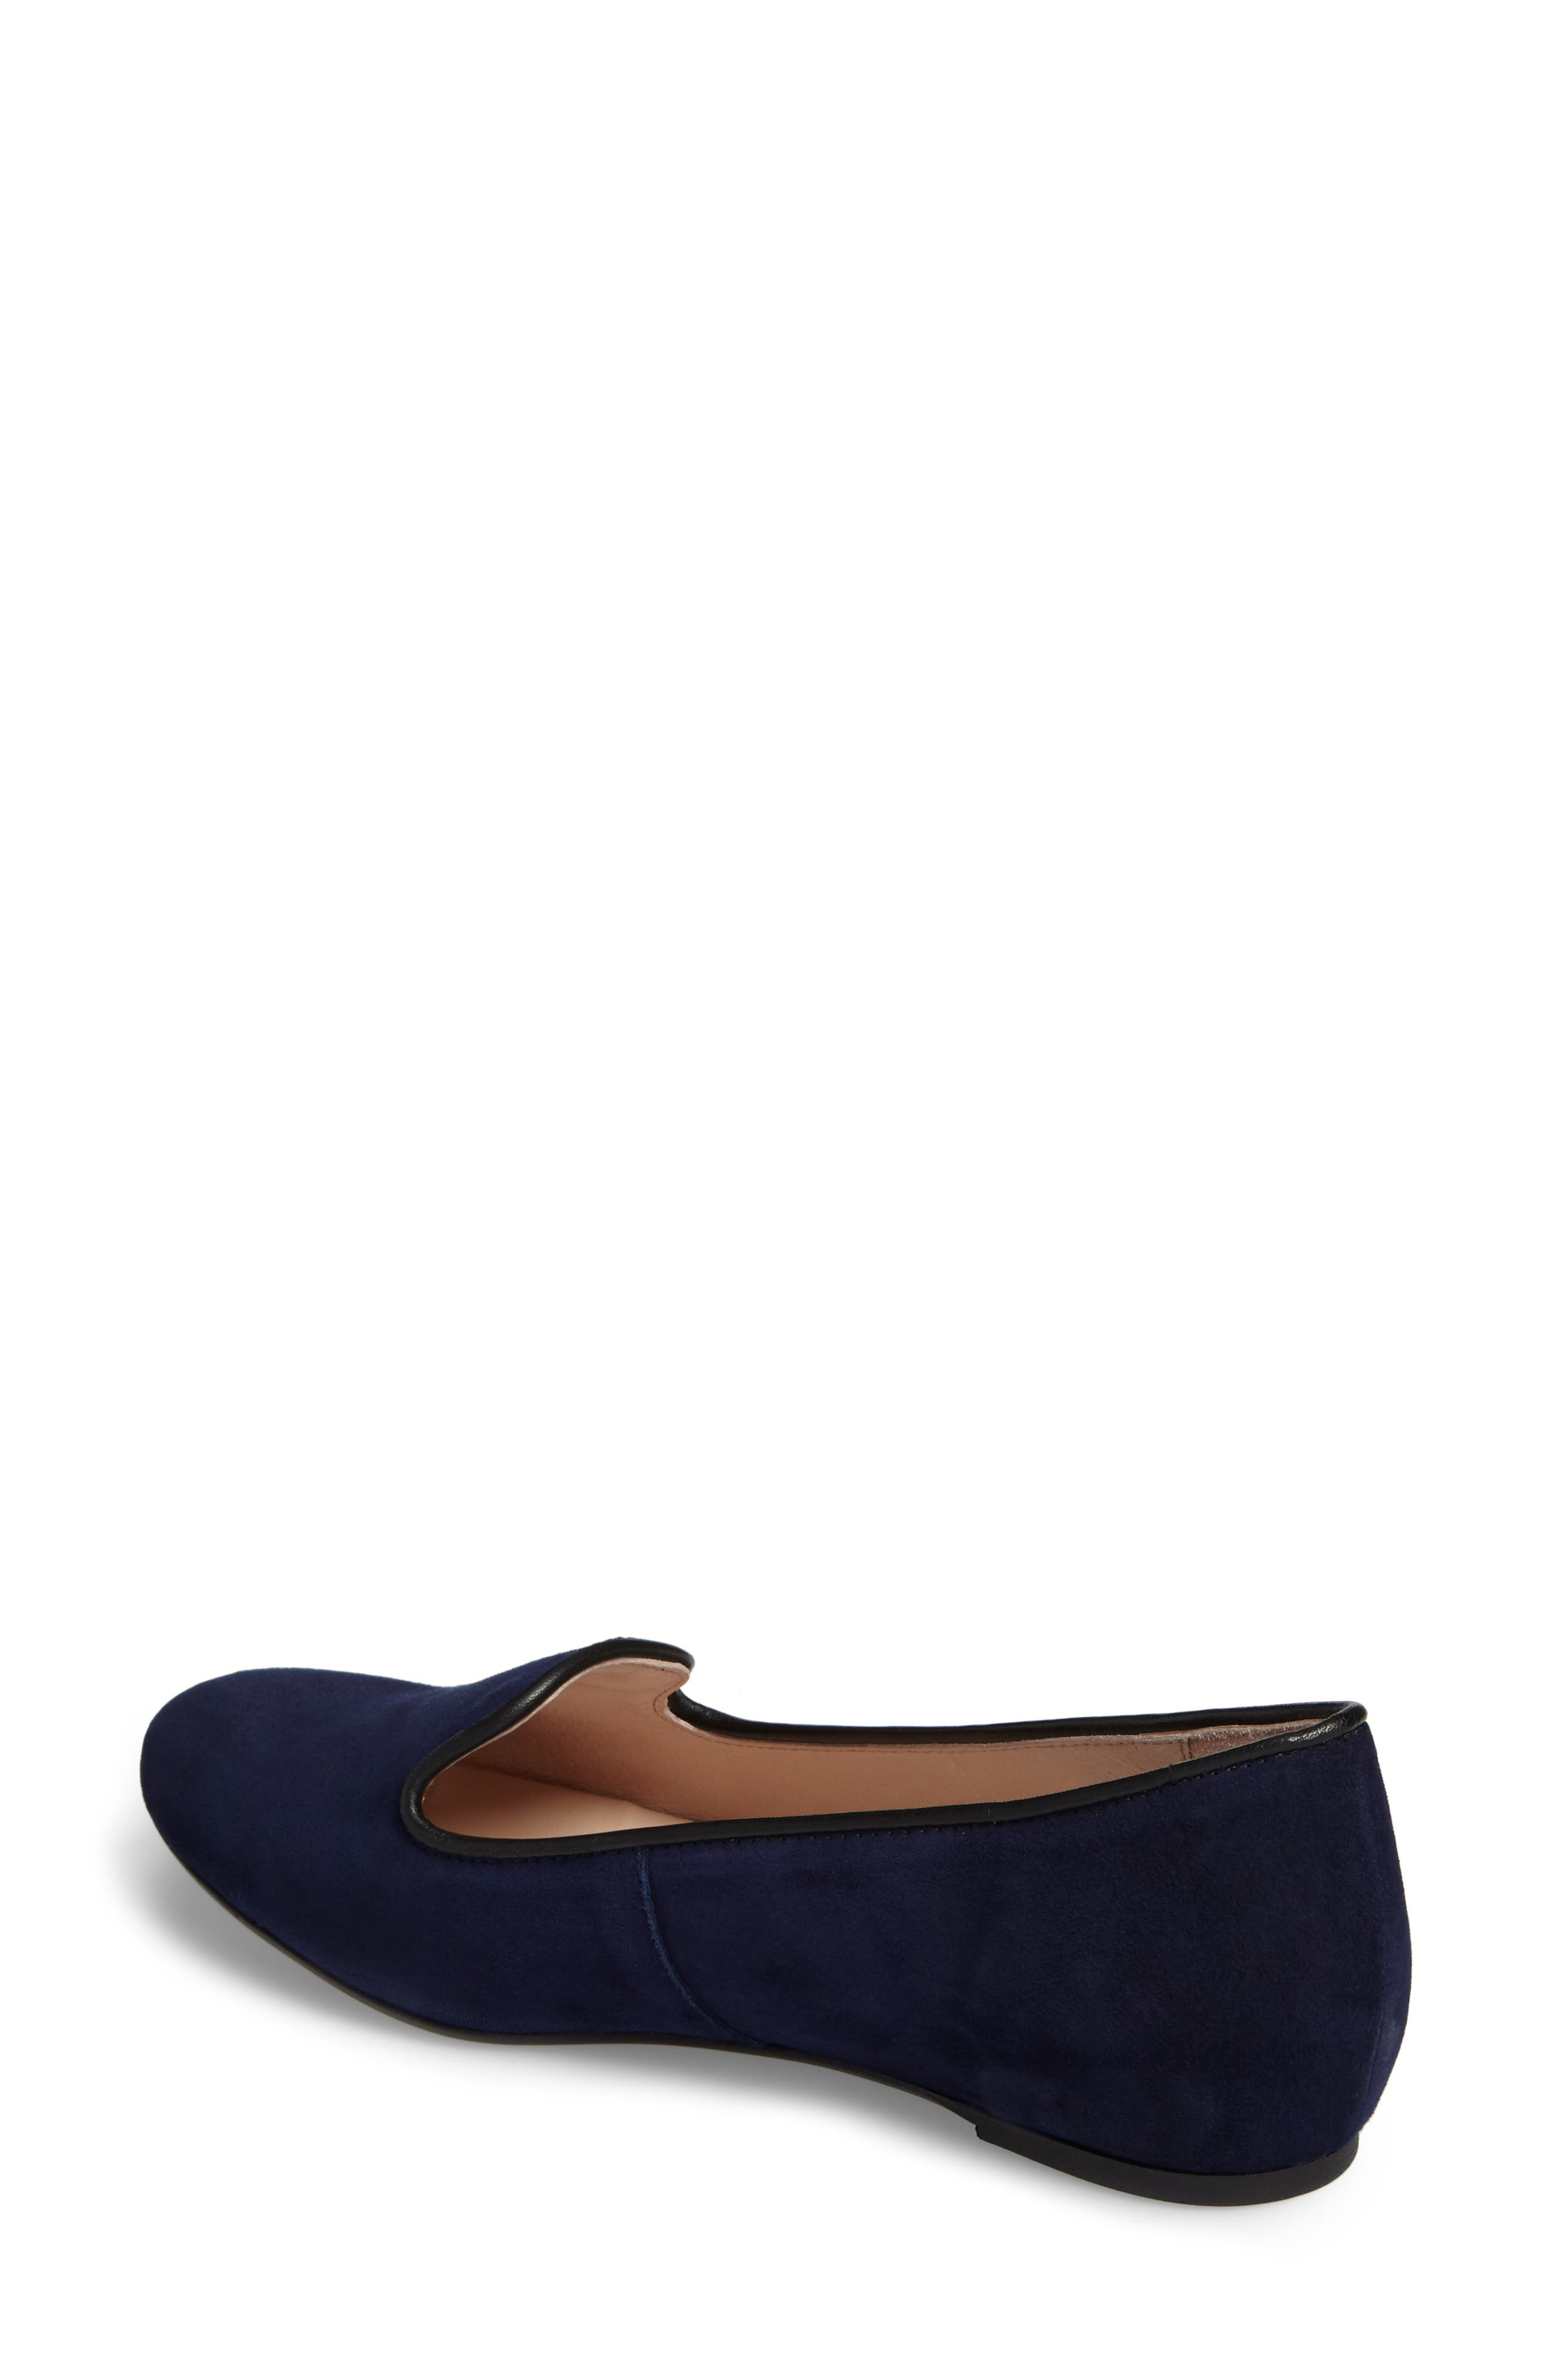 Alternate Image 2  - patricia green Waverly Loafer Flat (Women)